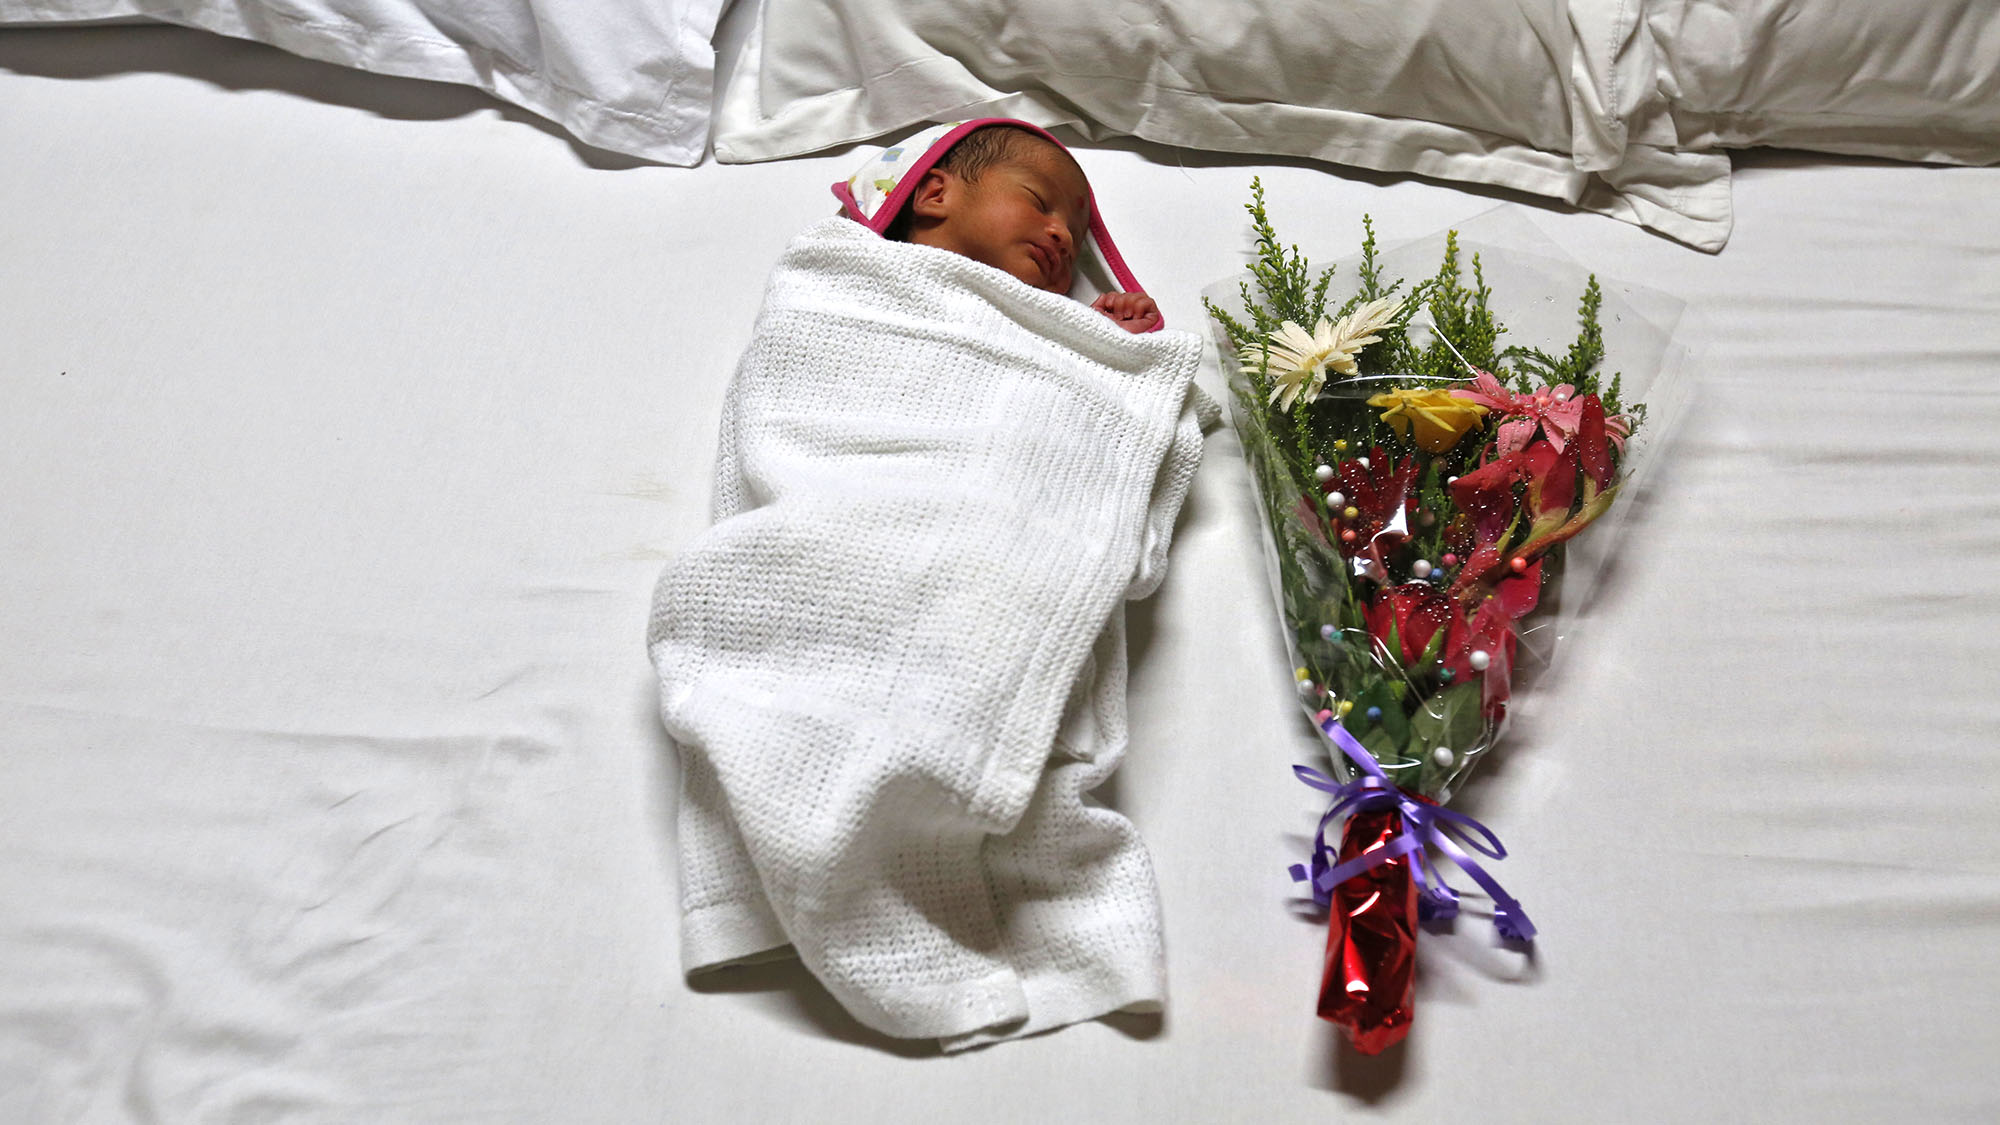 India-Infant-death